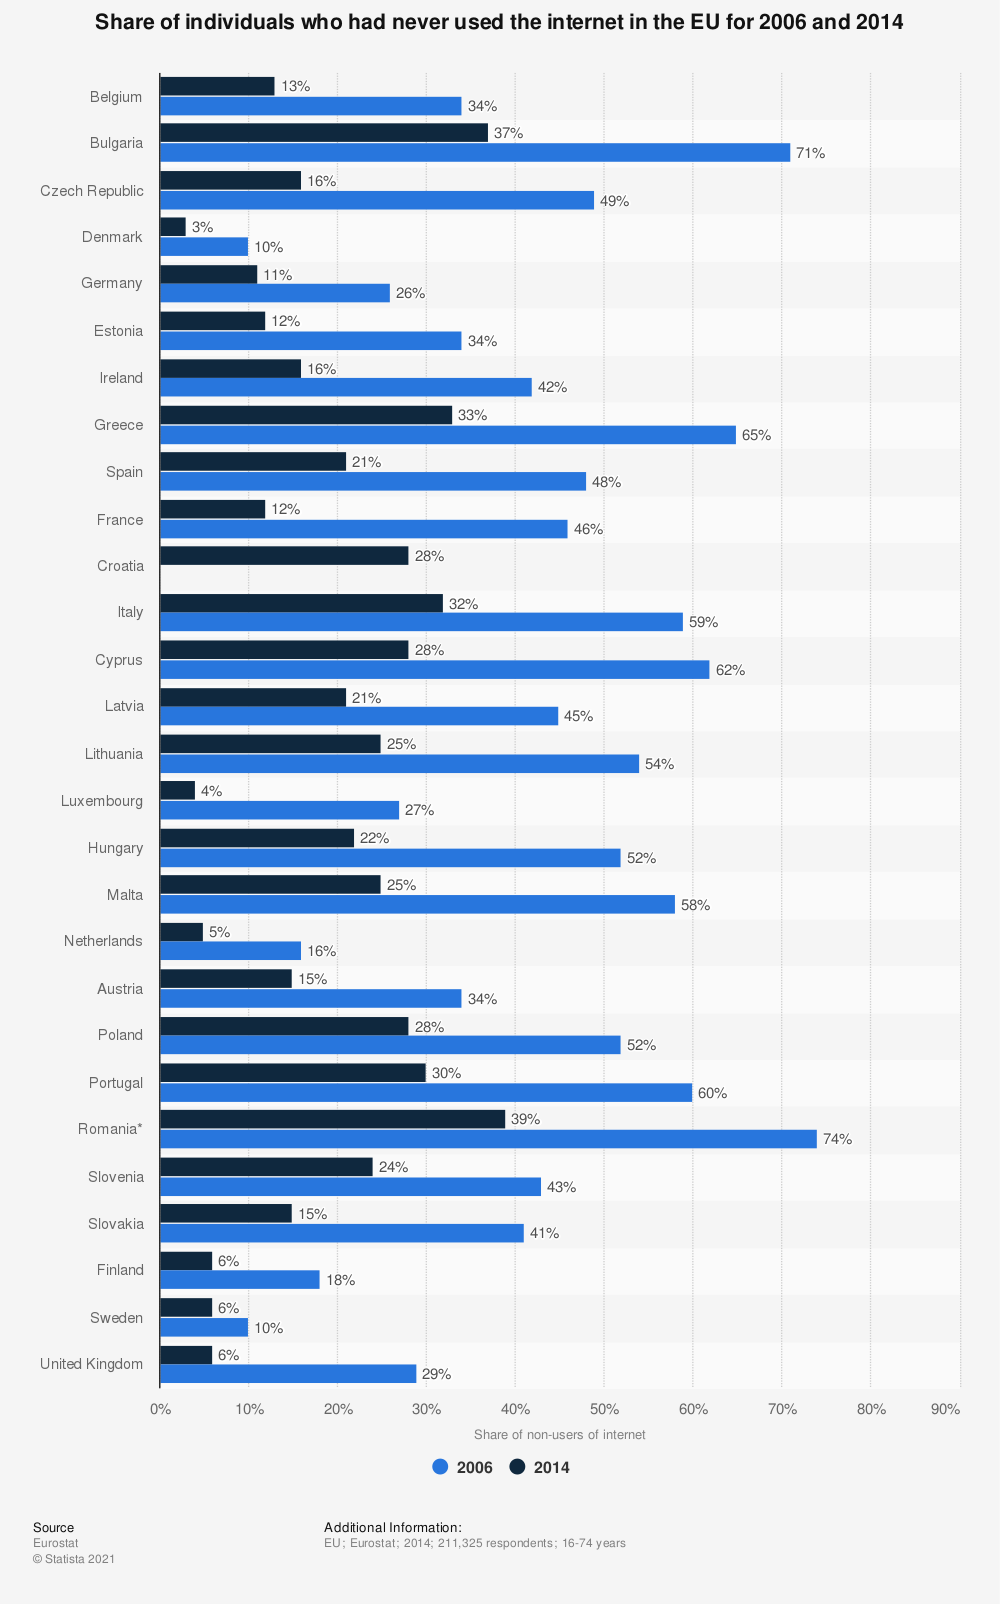 Statistic: Share of individuals who had never used the internet in the EU  for 2006 and 2014 | Statista